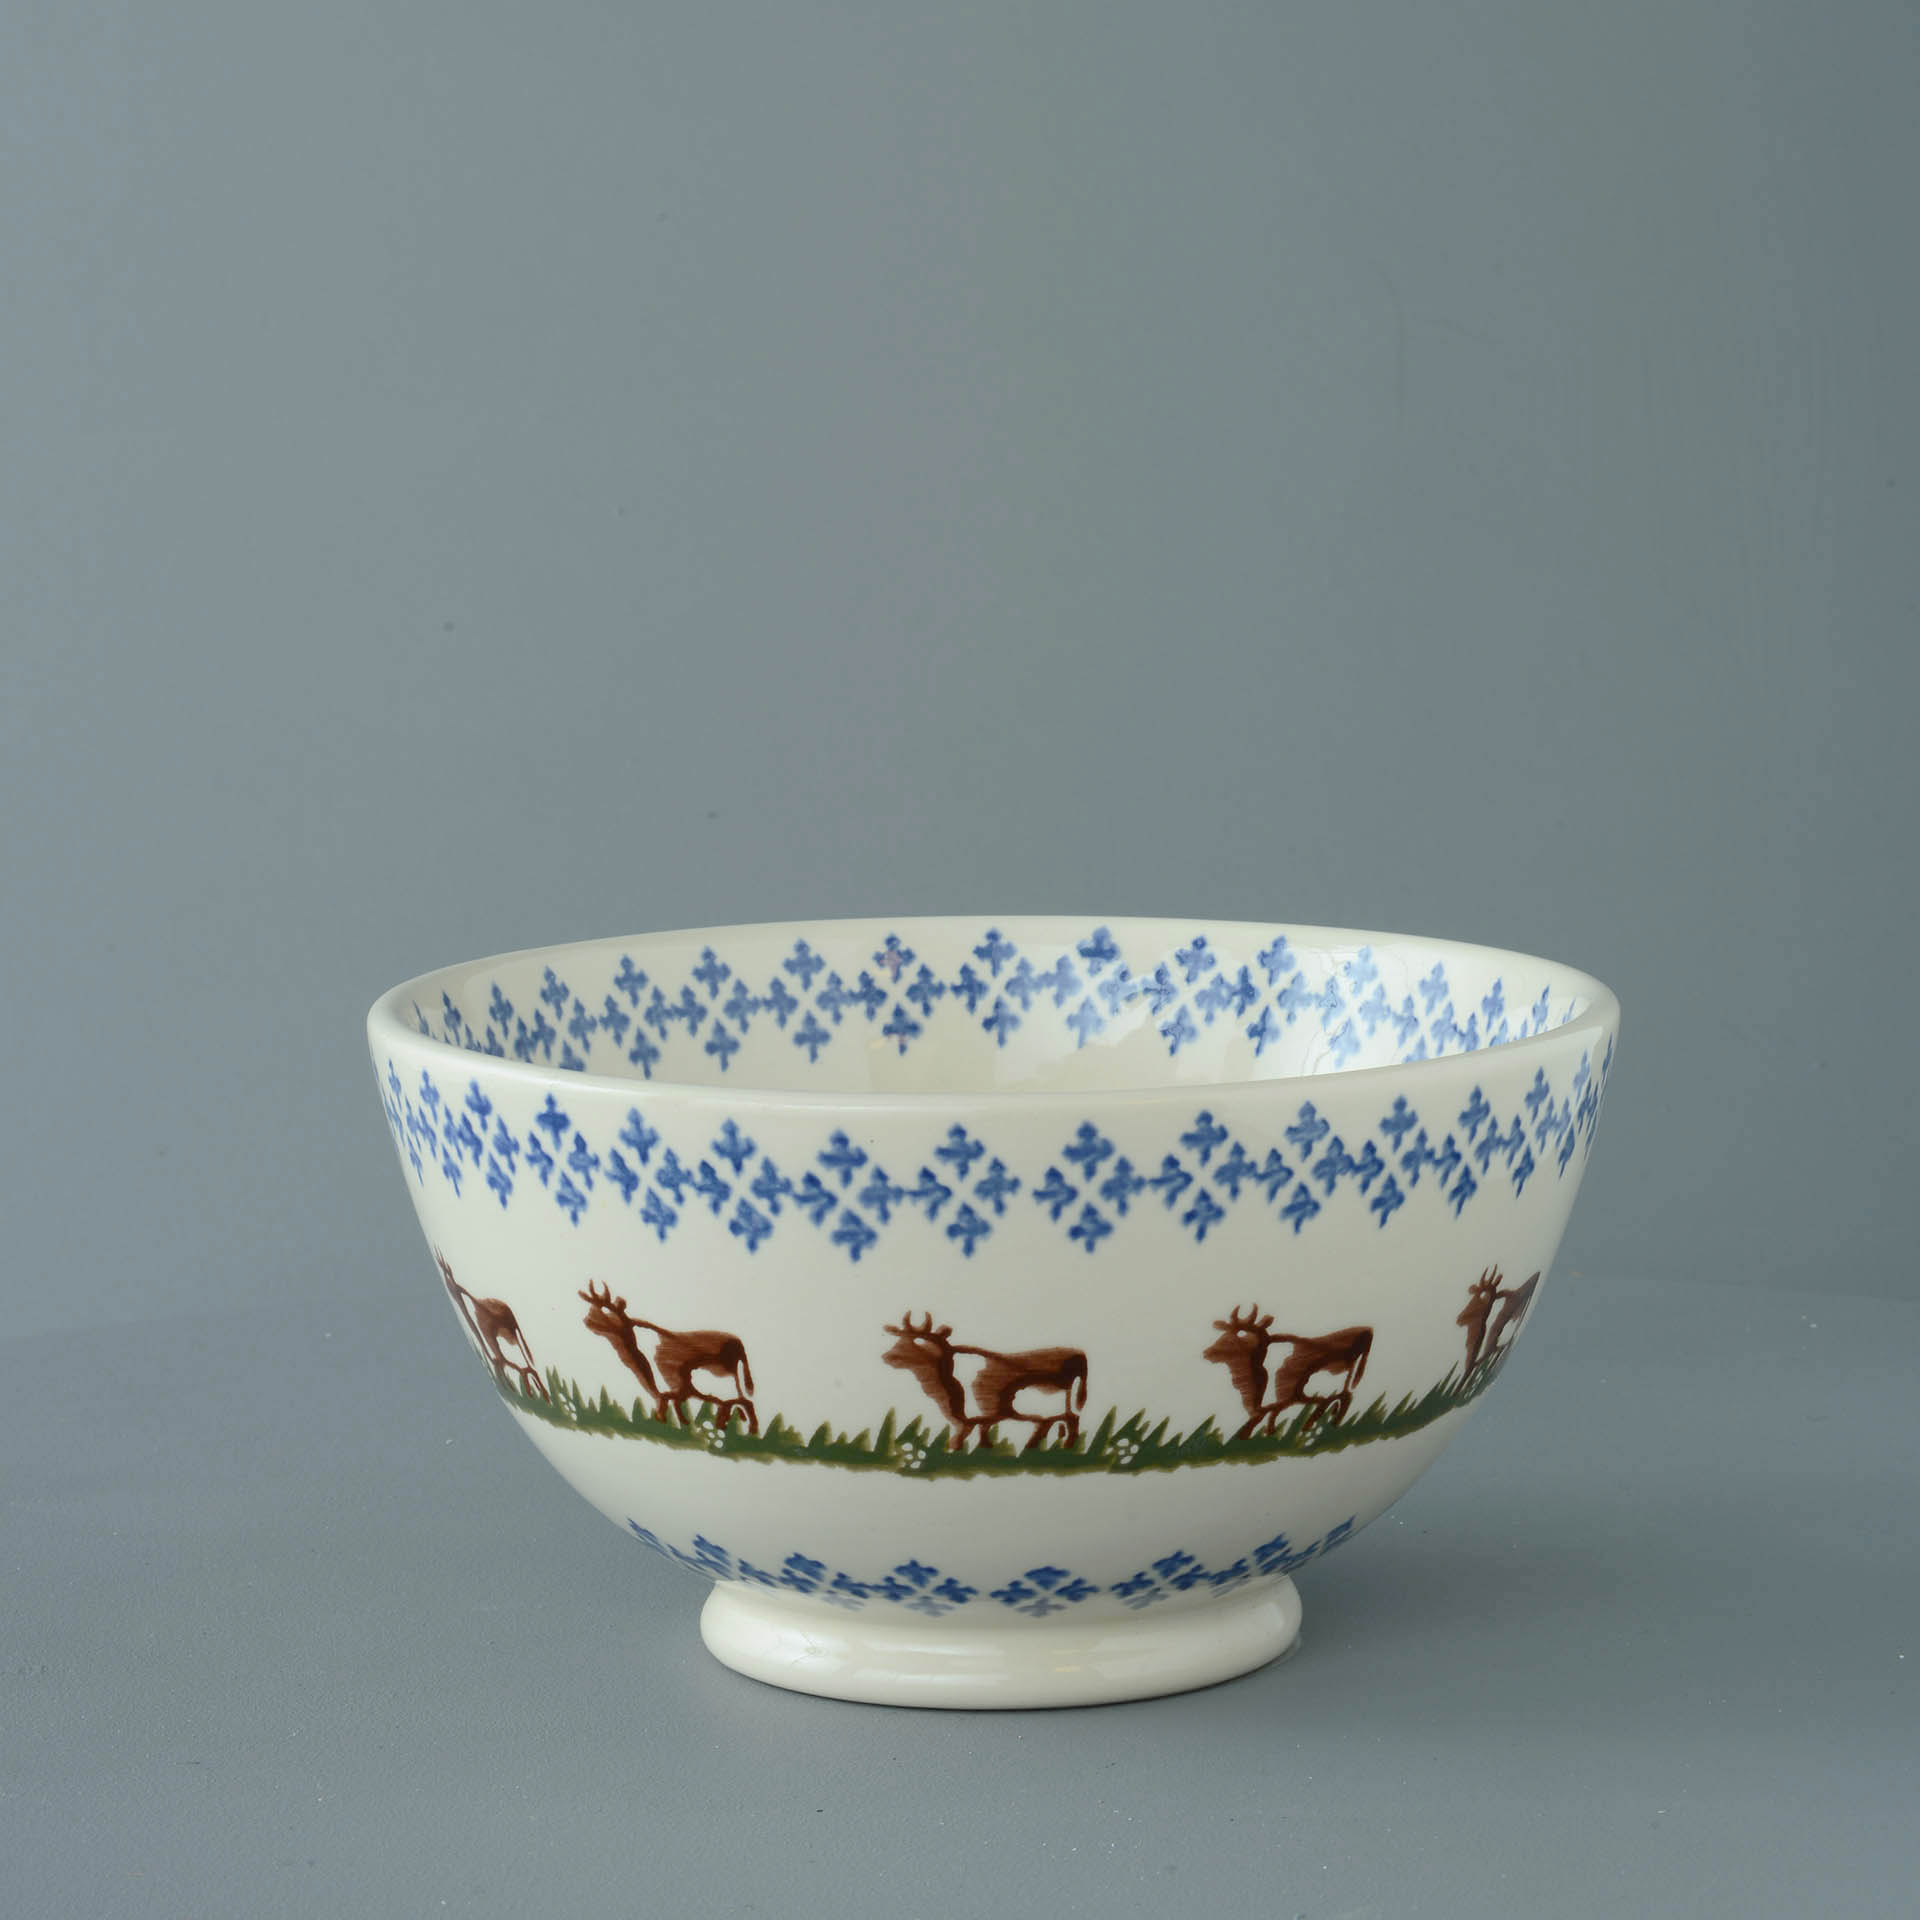 Cows Serving Bowl 11 x 21.5cm